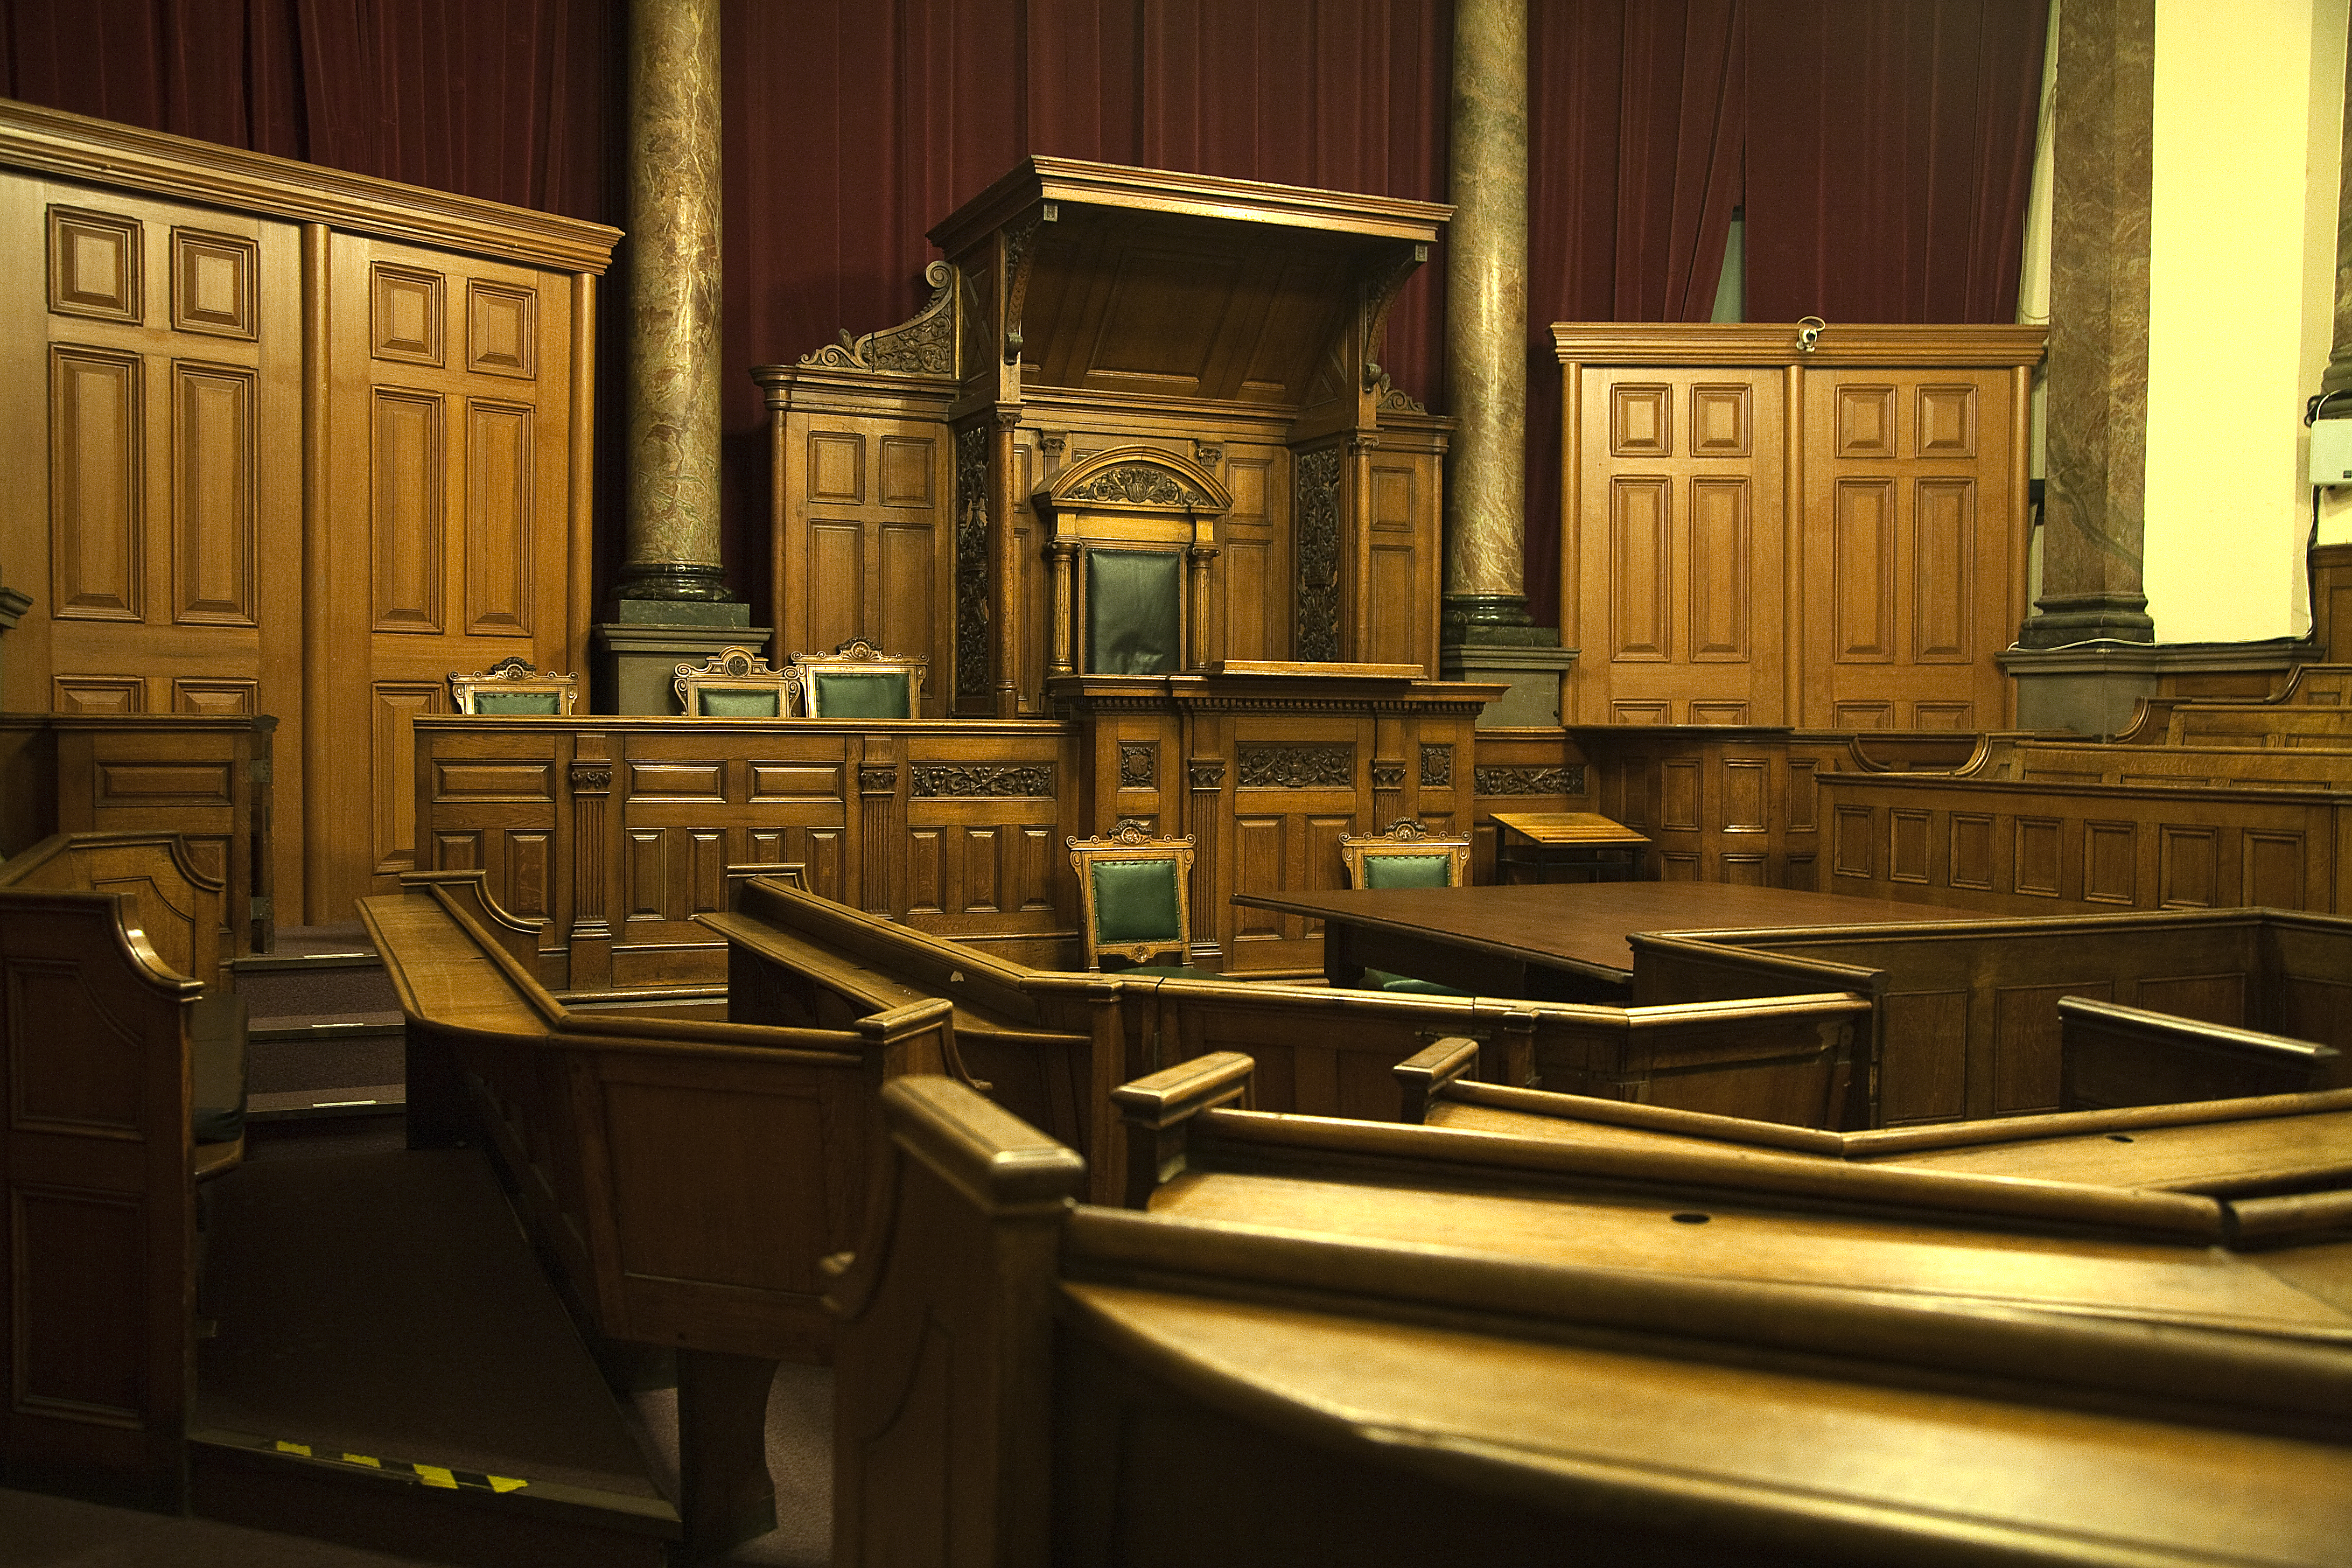 Victorian_Civil_Courtroom%2C_National_Justice_Museum%2C_June_2010.jpg